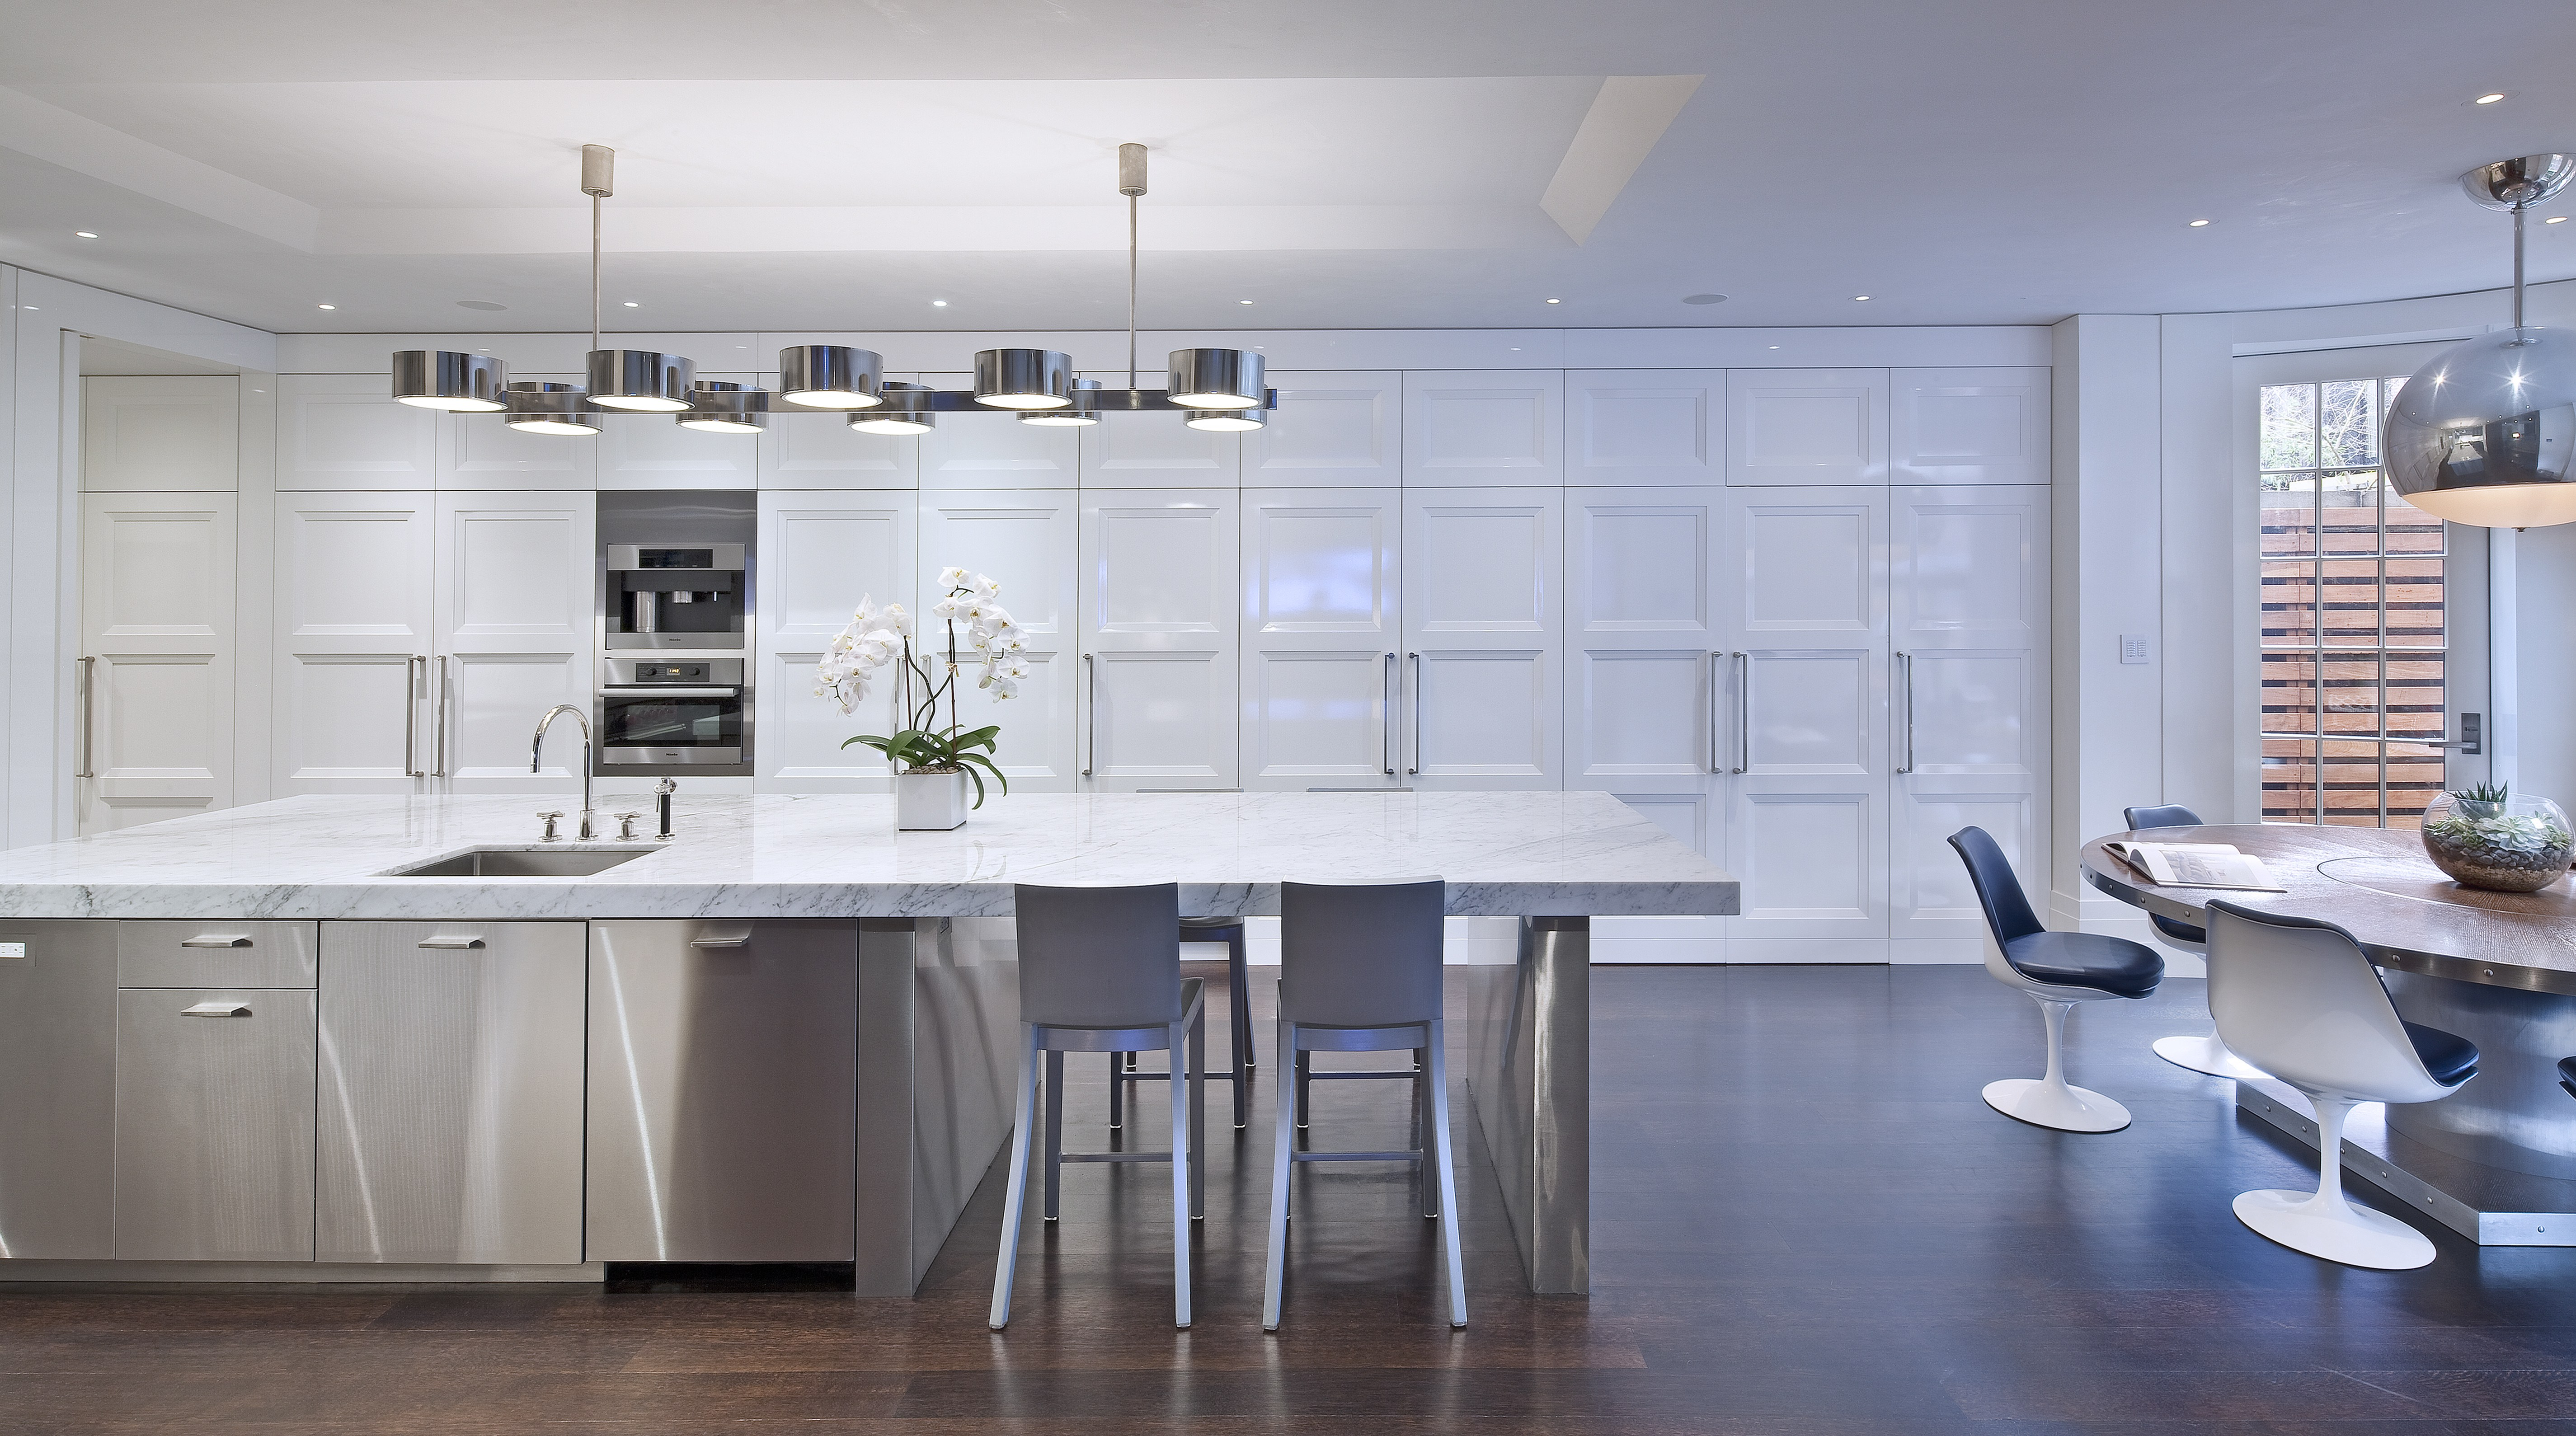 6 Clever Kitchen Design Ideas from St. Charles of New York